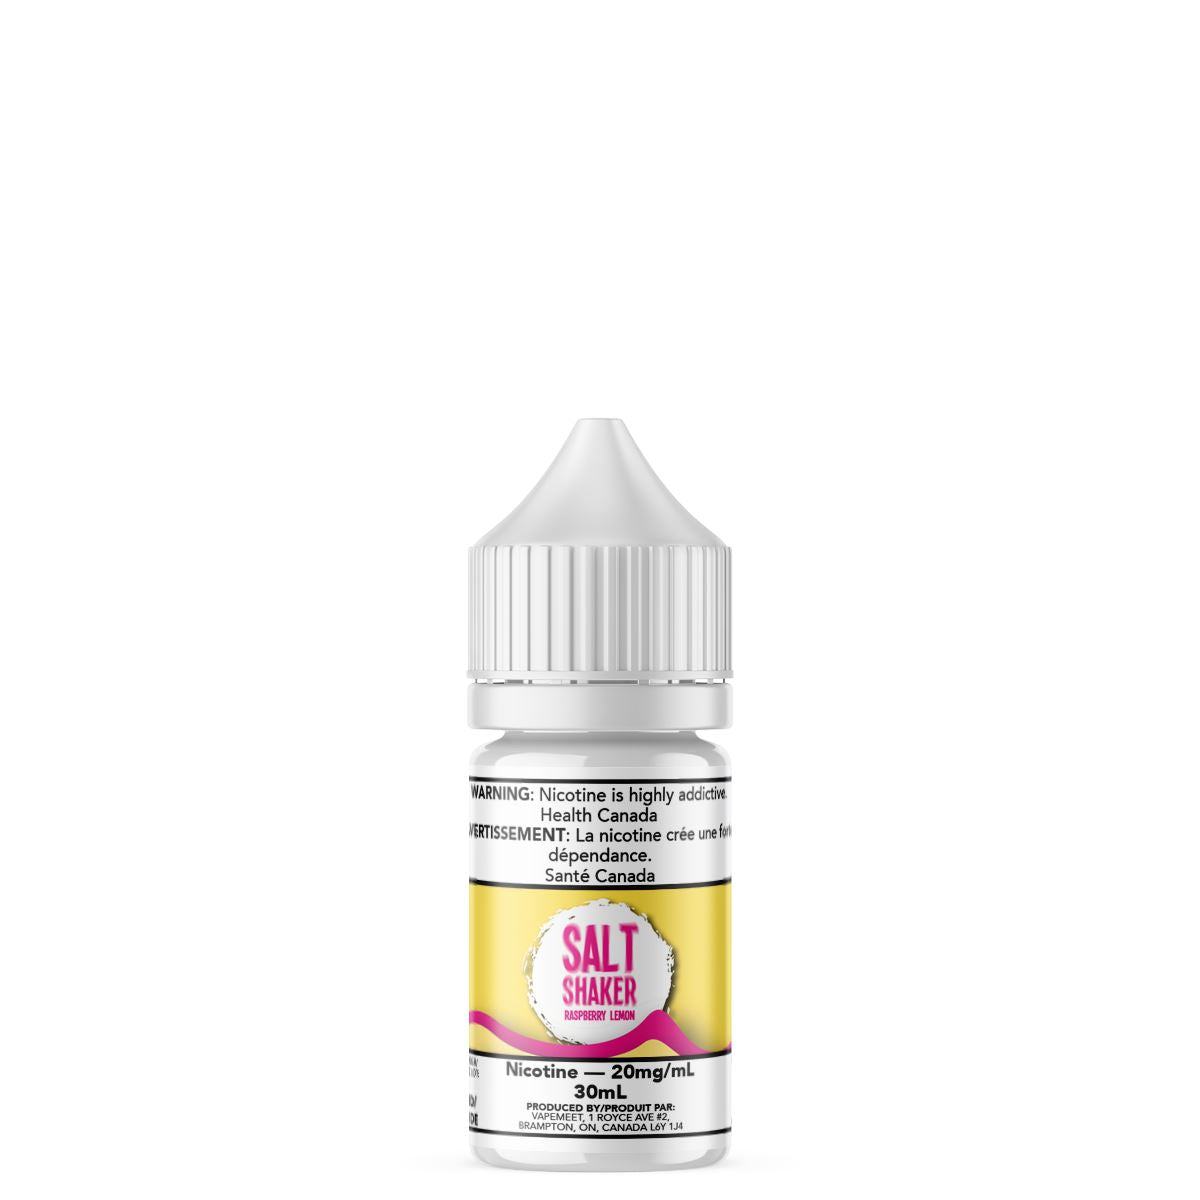 Salt Shaker - Raspberry Lemon E-Liquid Salt Shaker 30mL 20 mg/mL